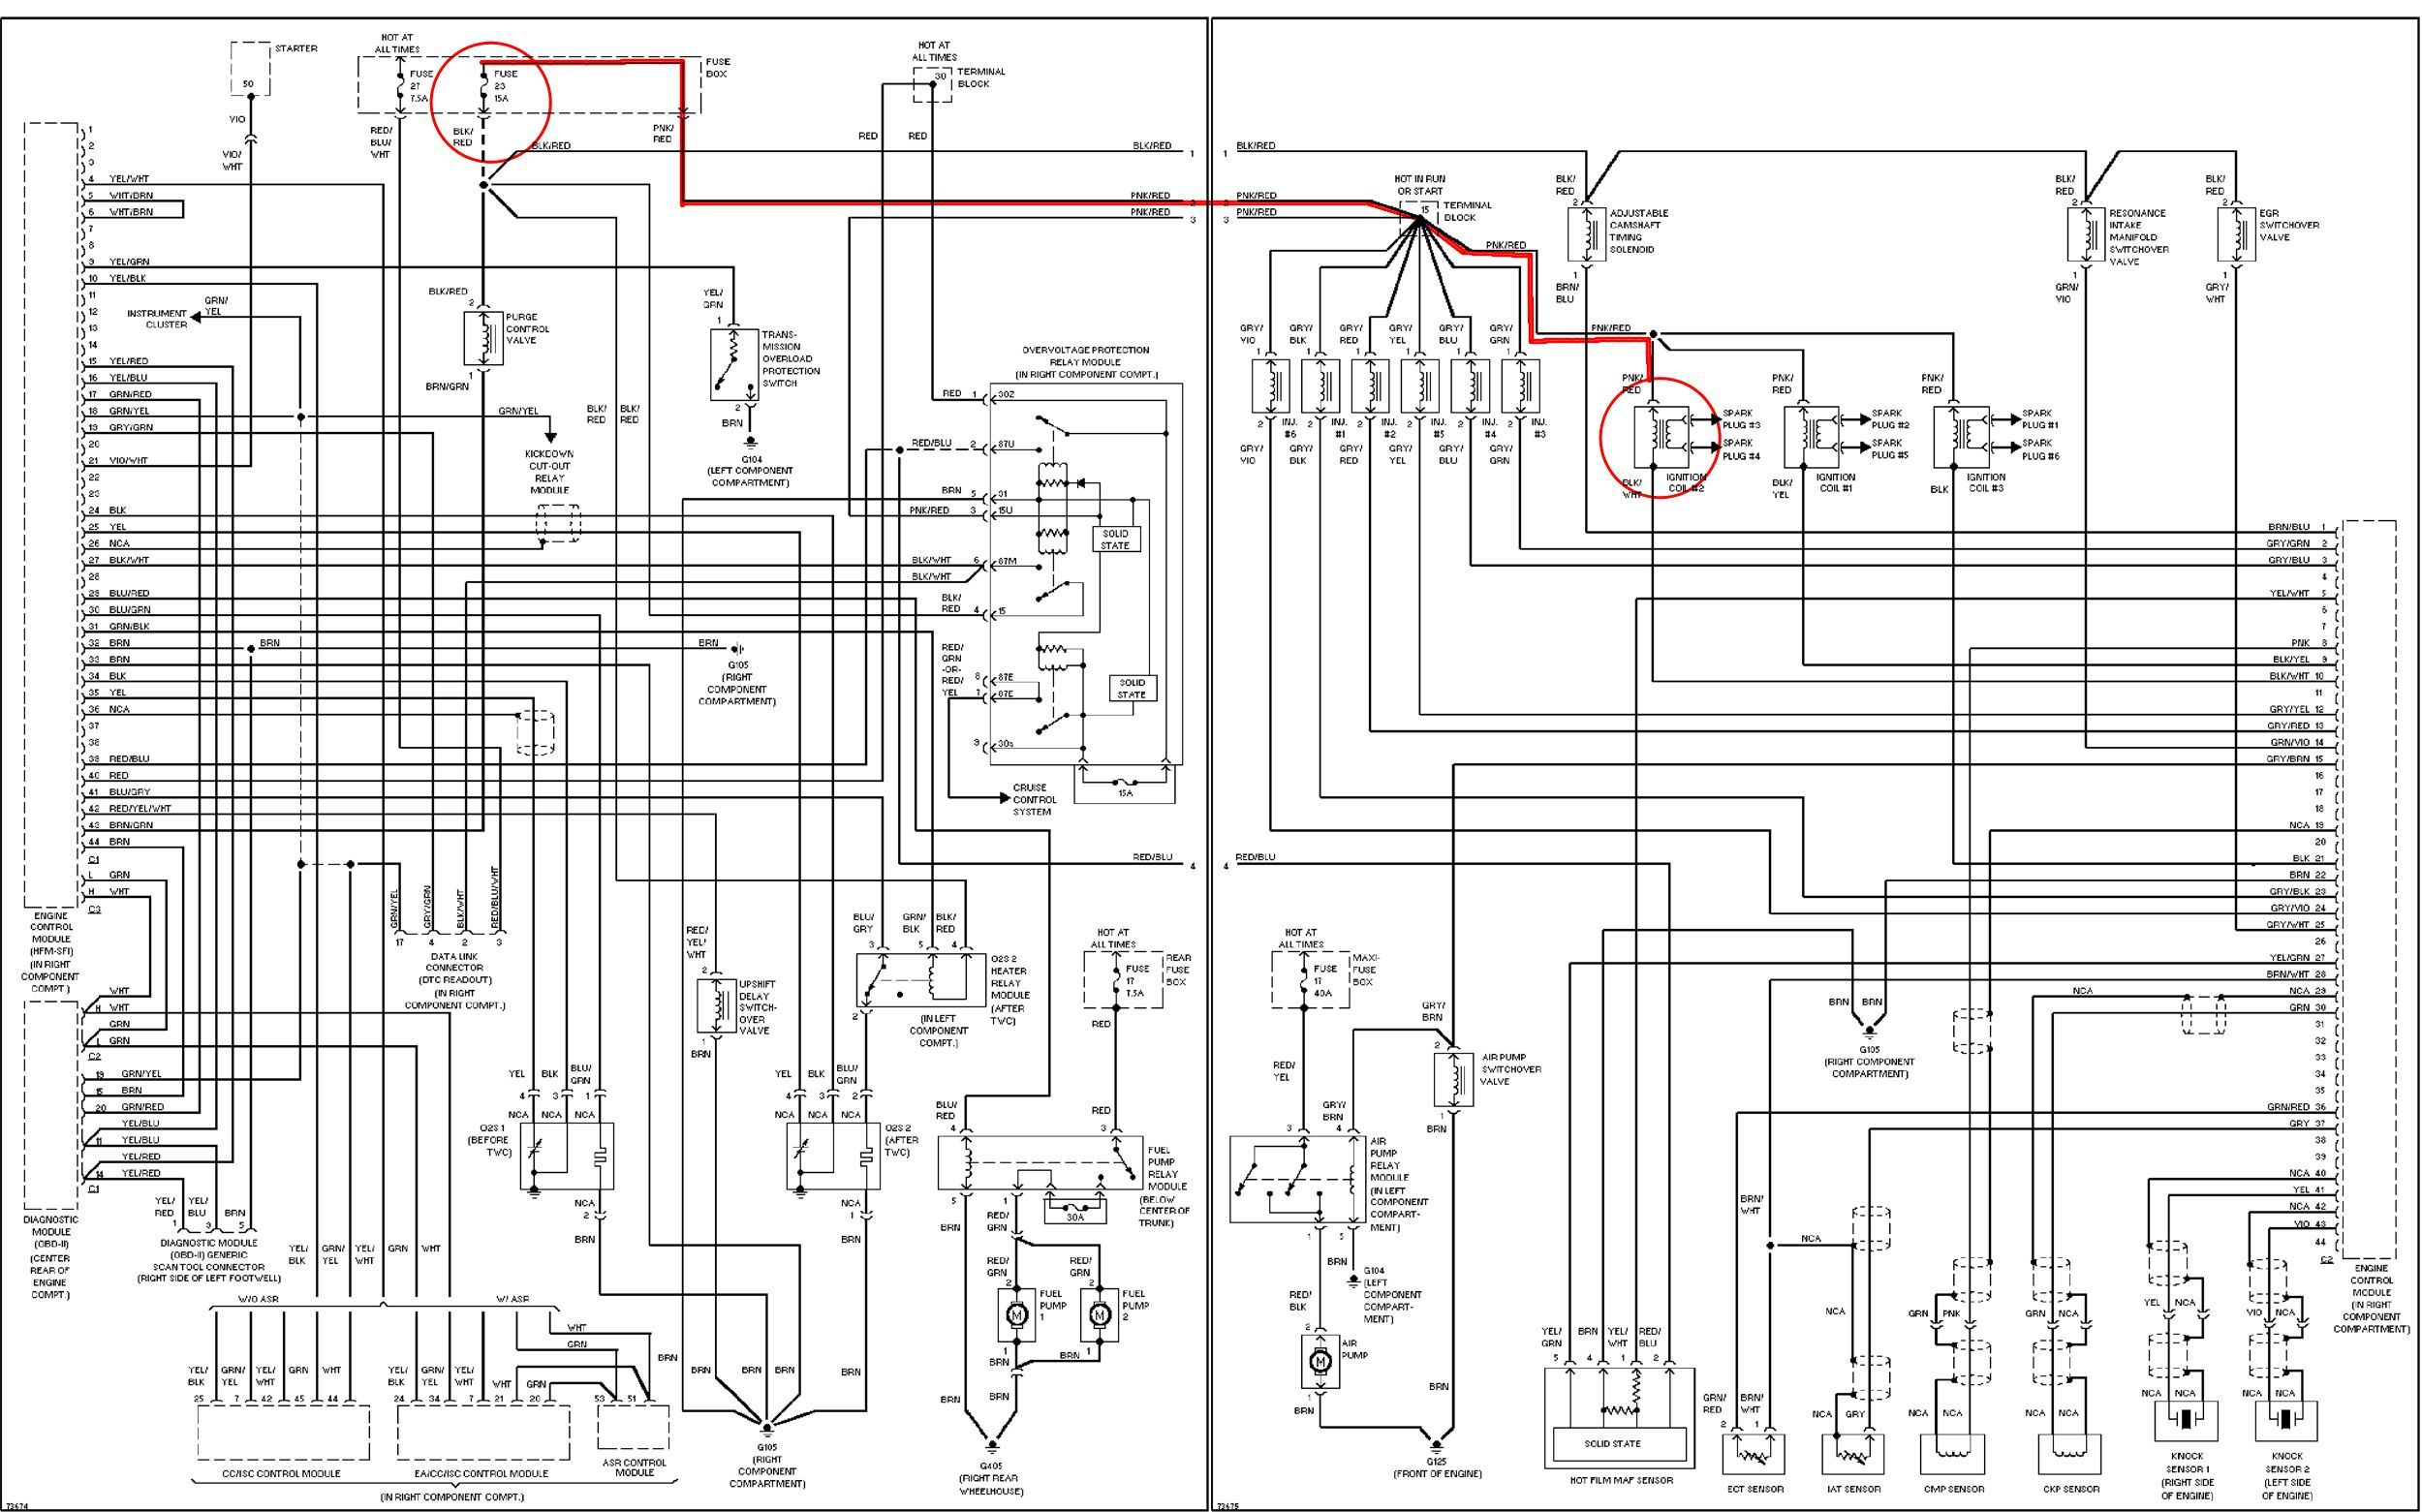 mercedes wiring diagrams diagram ac split daikin w211 great installation of home rh 20 10 2 medi med ruhr de 300e color codes